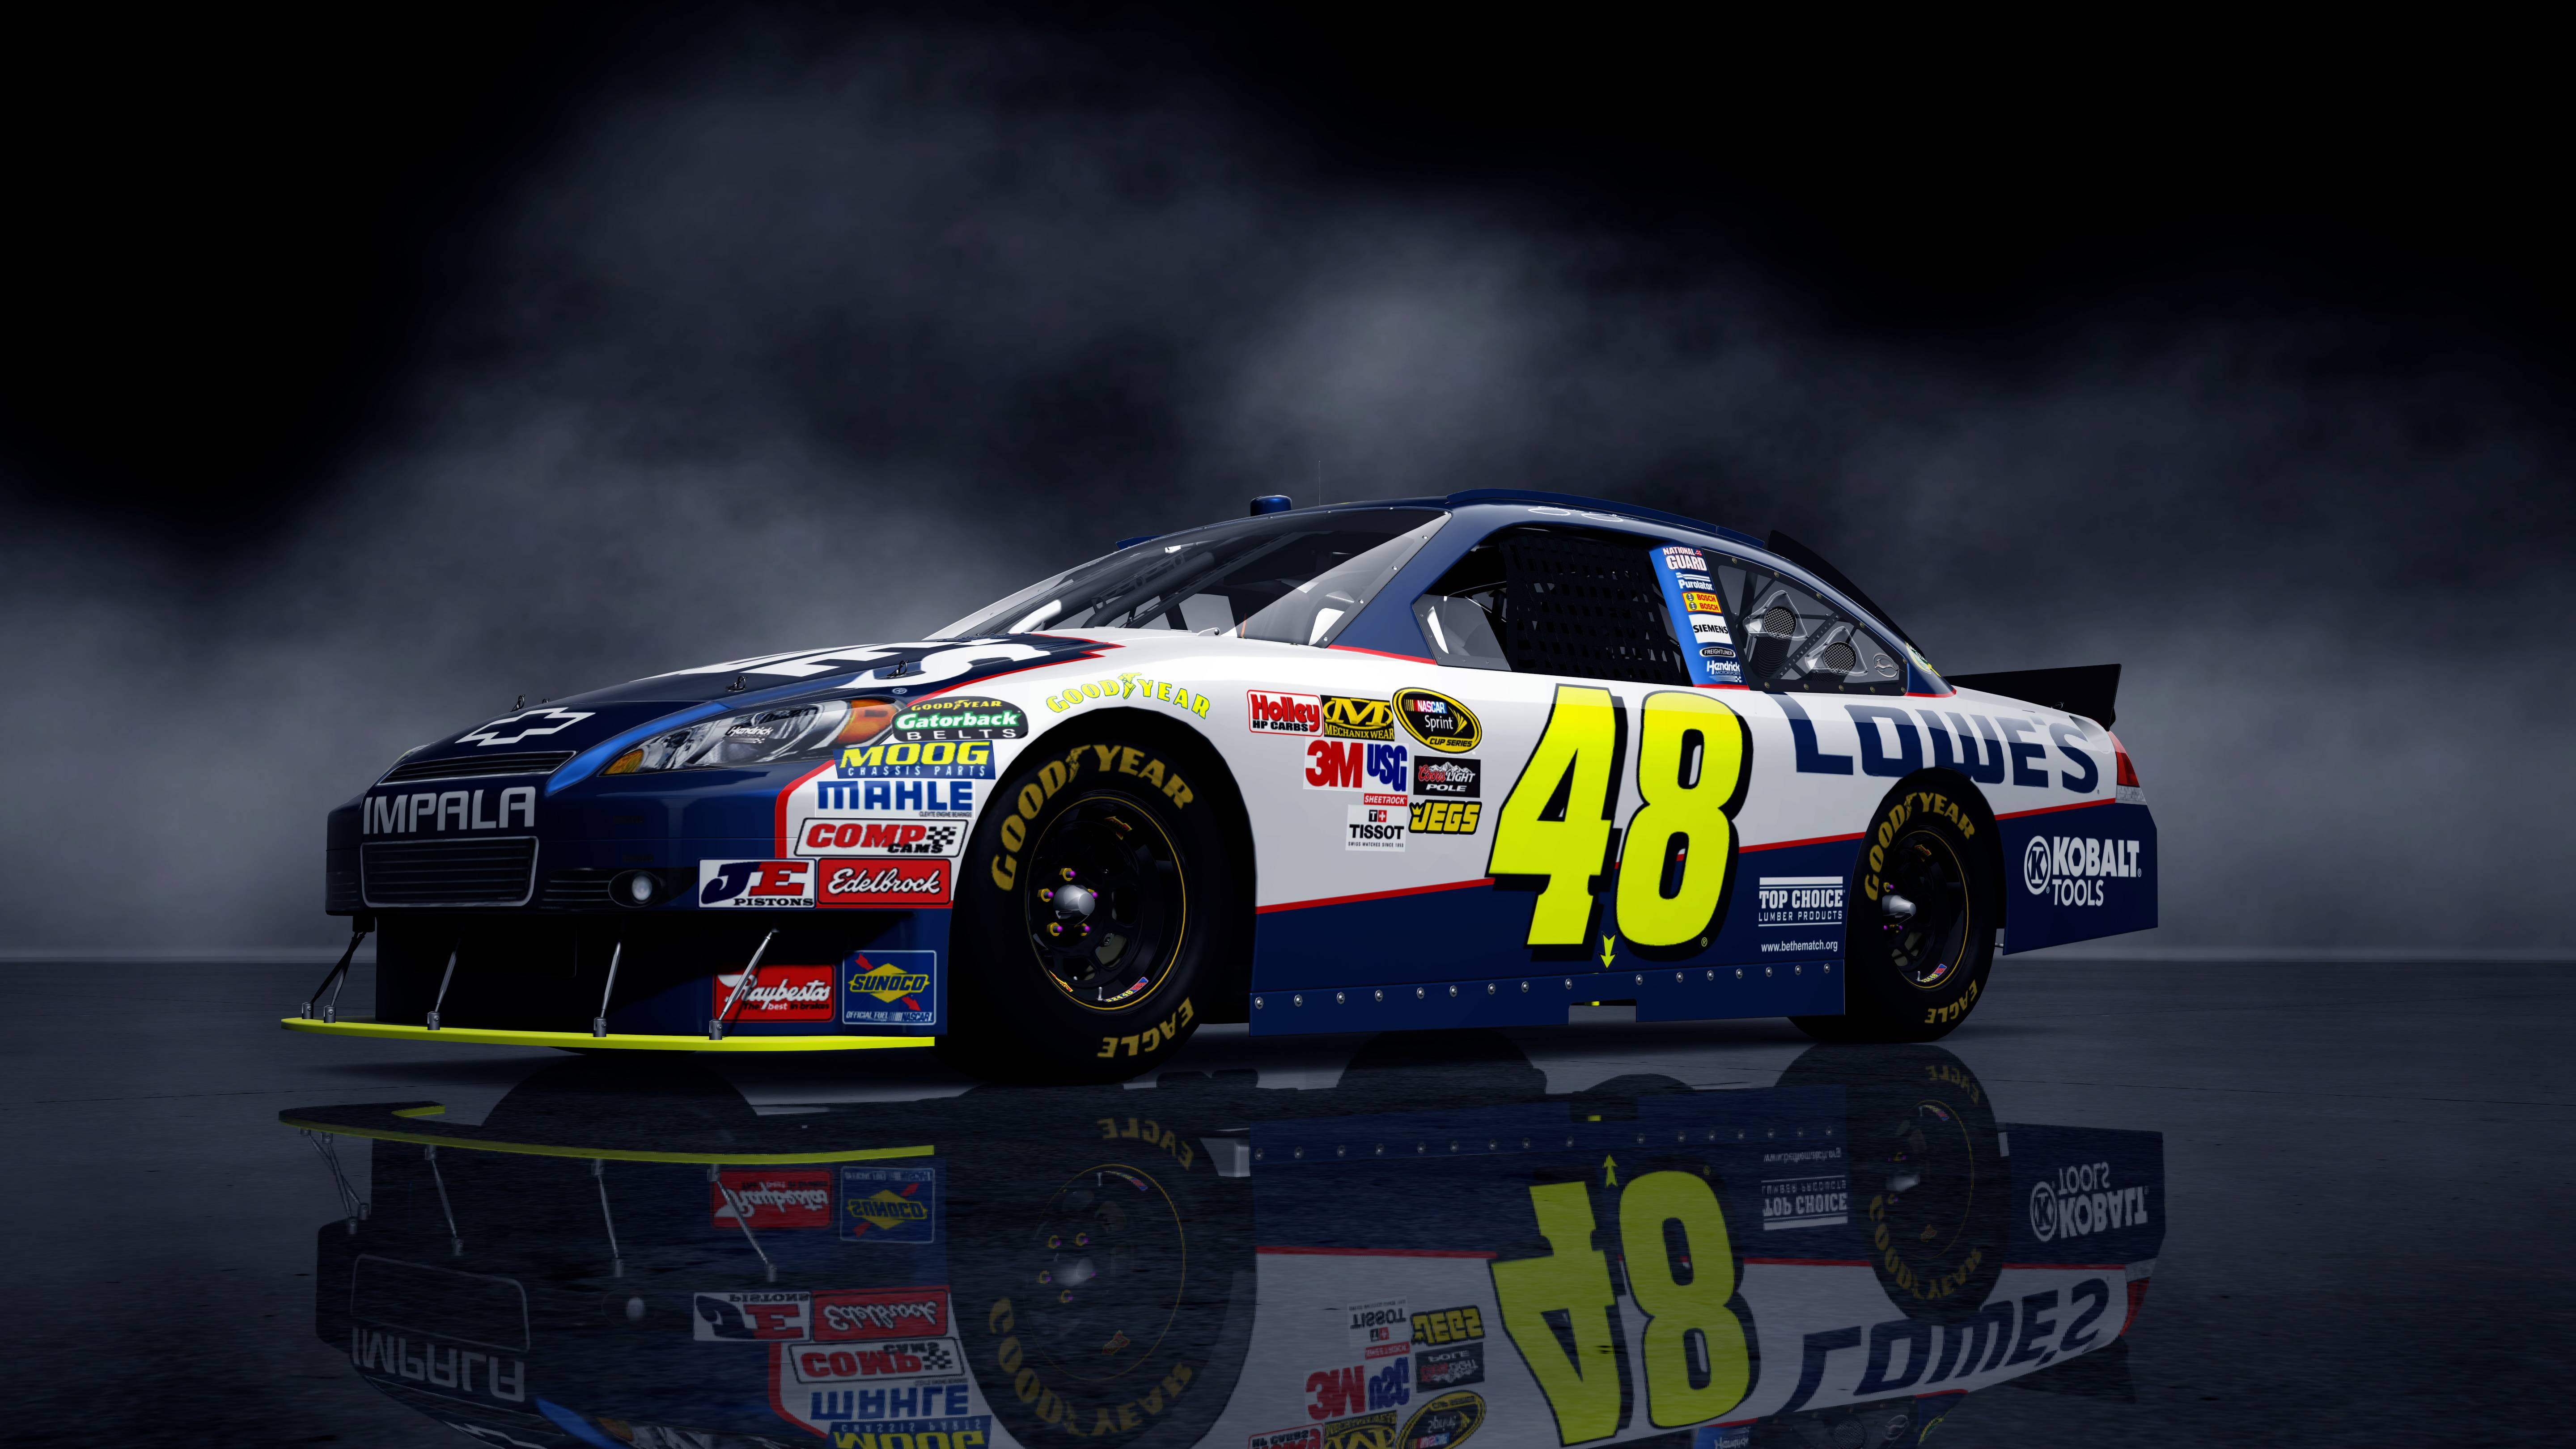 Jimmie Johnson Desktop Wallpapers 5760x3240